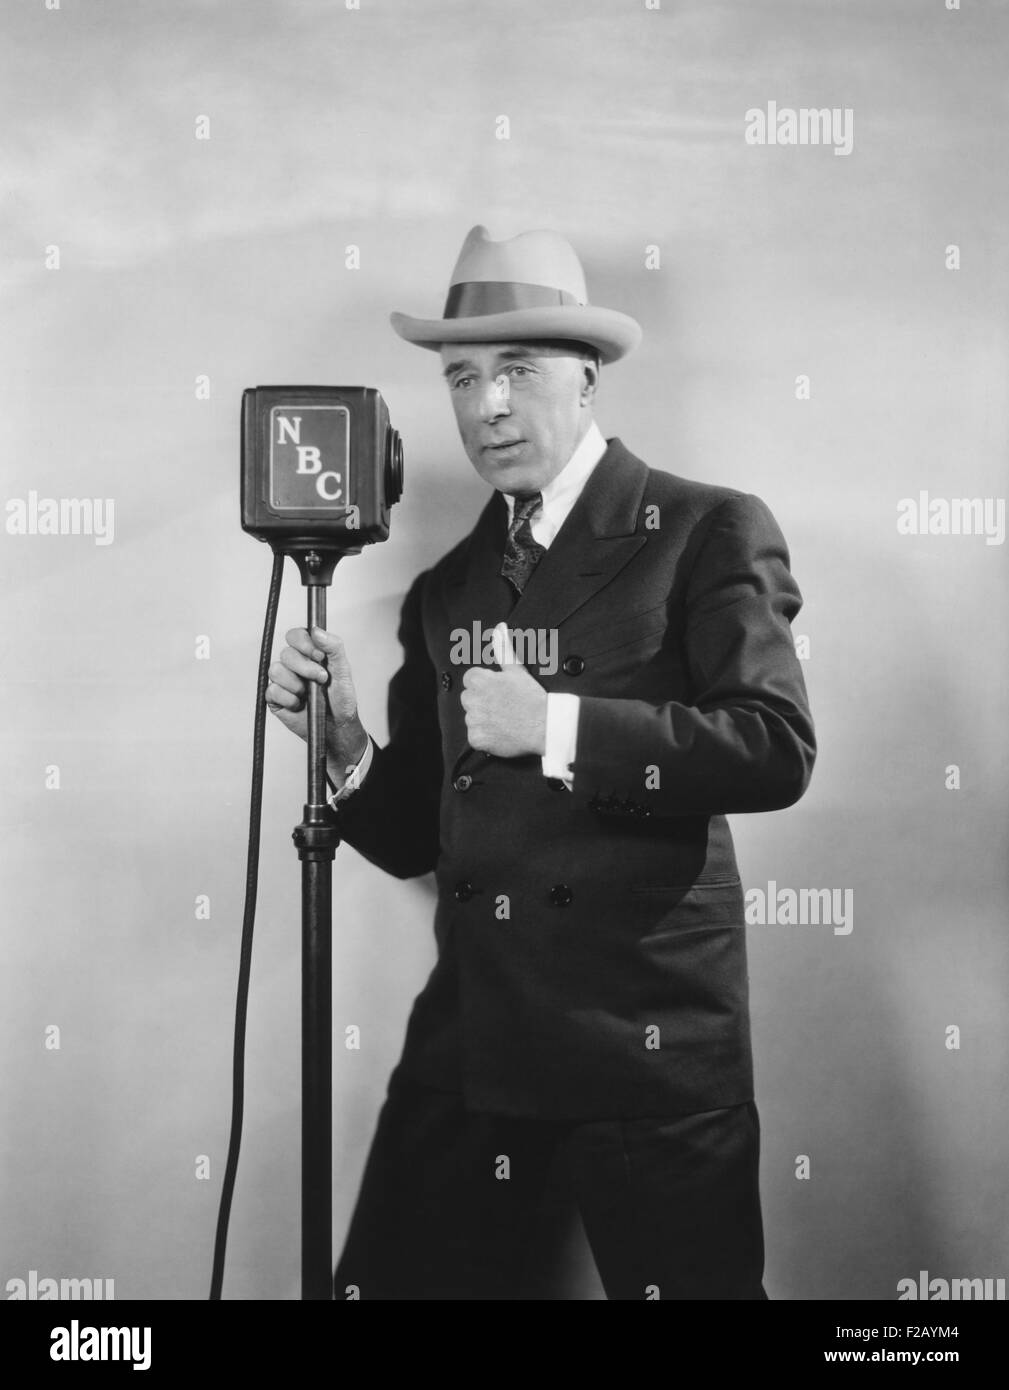 Legendary movie director D. W. Griffith broadcasting, 'D. W. Griffith's Hollywood.' Ca. 1930. The NBC - Stock Image